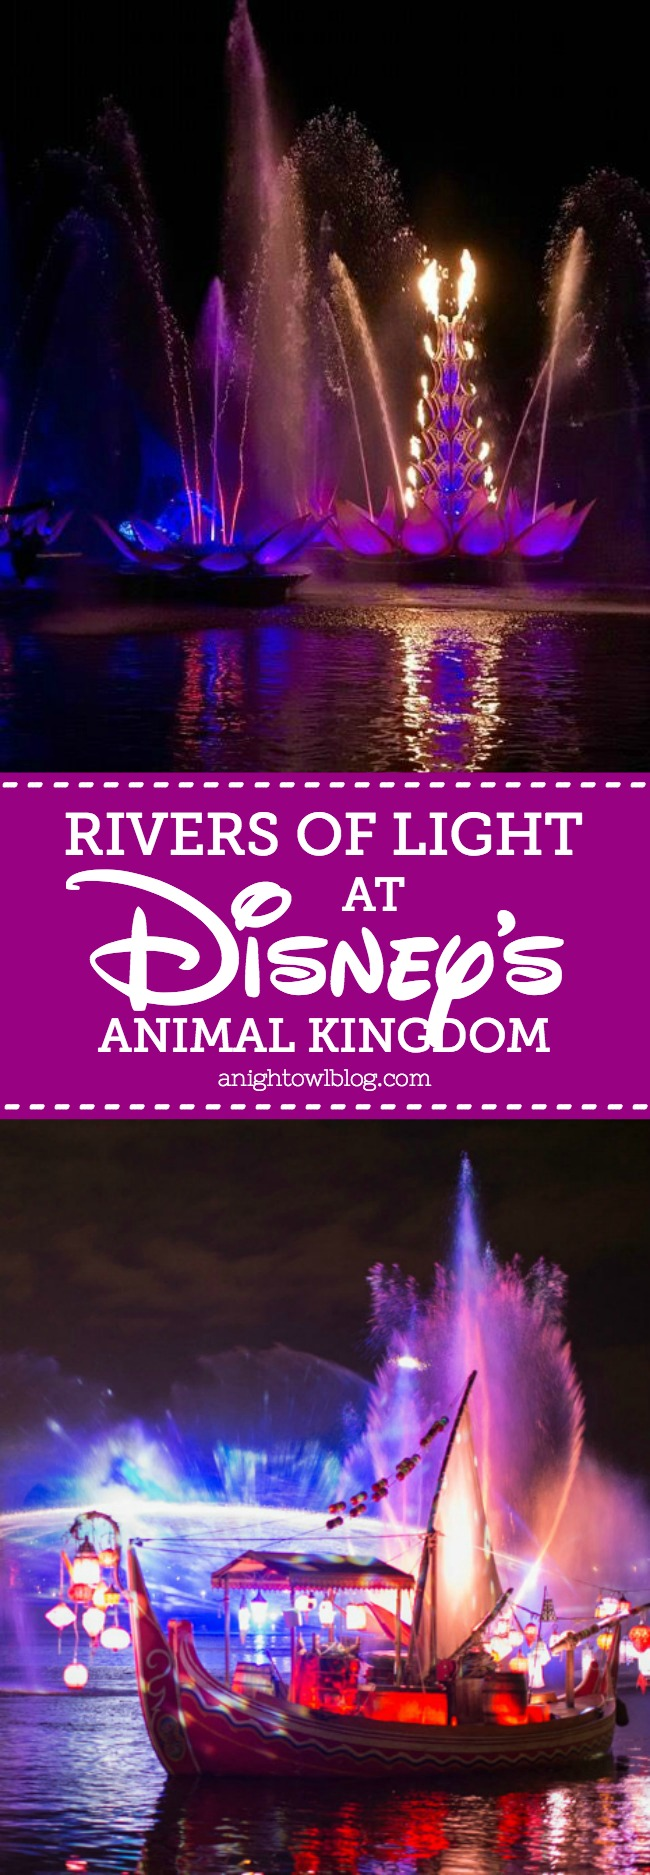 "We're closer than ever to the debut of ""Rivers of Light,"" the newest nighttime offering that's set to debut at Disney's Animal Kingdom on February 17th. Today we have a sneak peek to share with you from our preview at Disney's Social Media Moms Celebration."